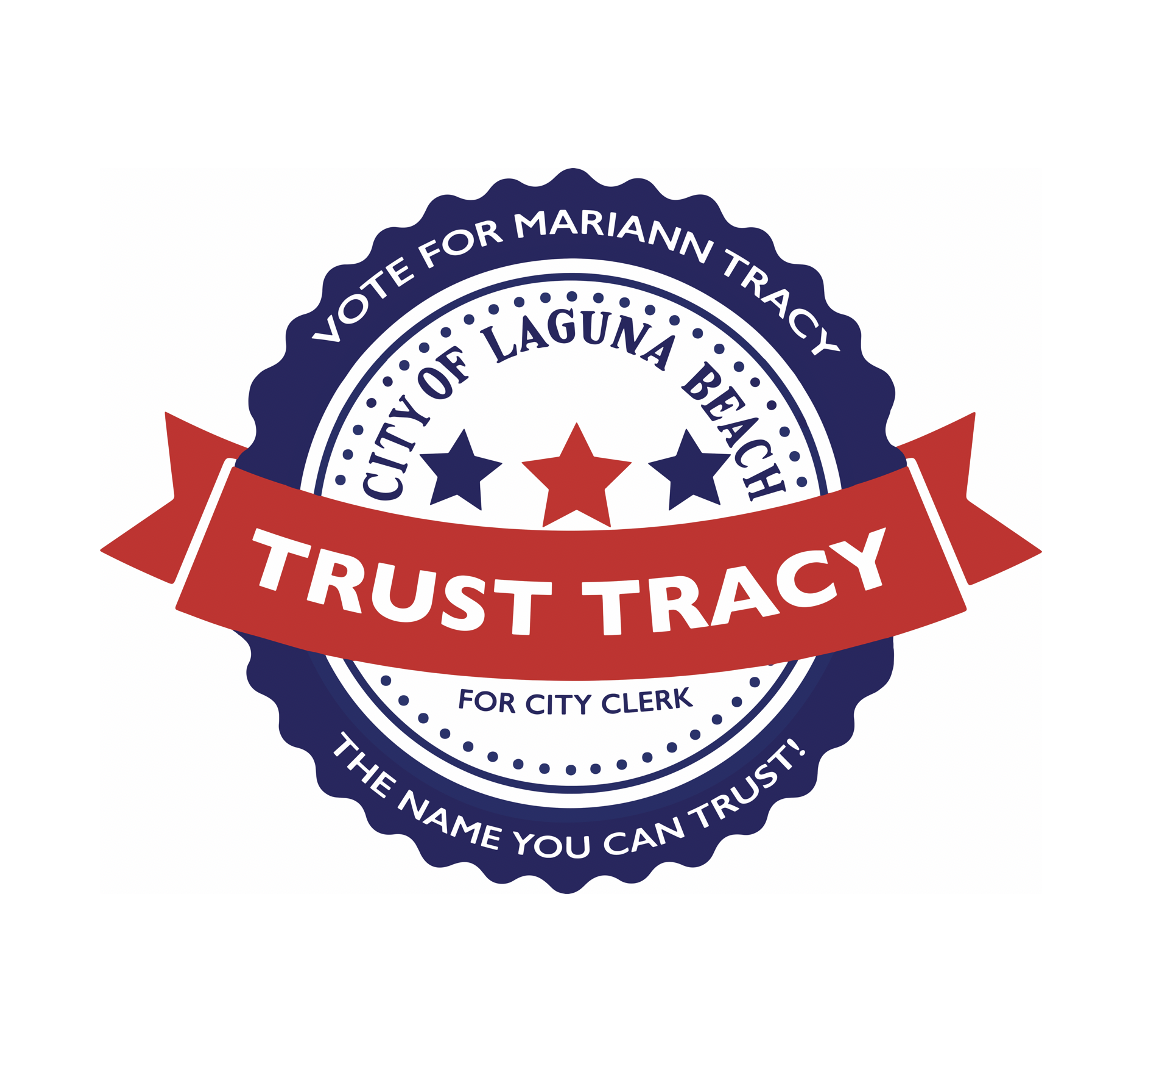 Trust Tracy for City Clerk